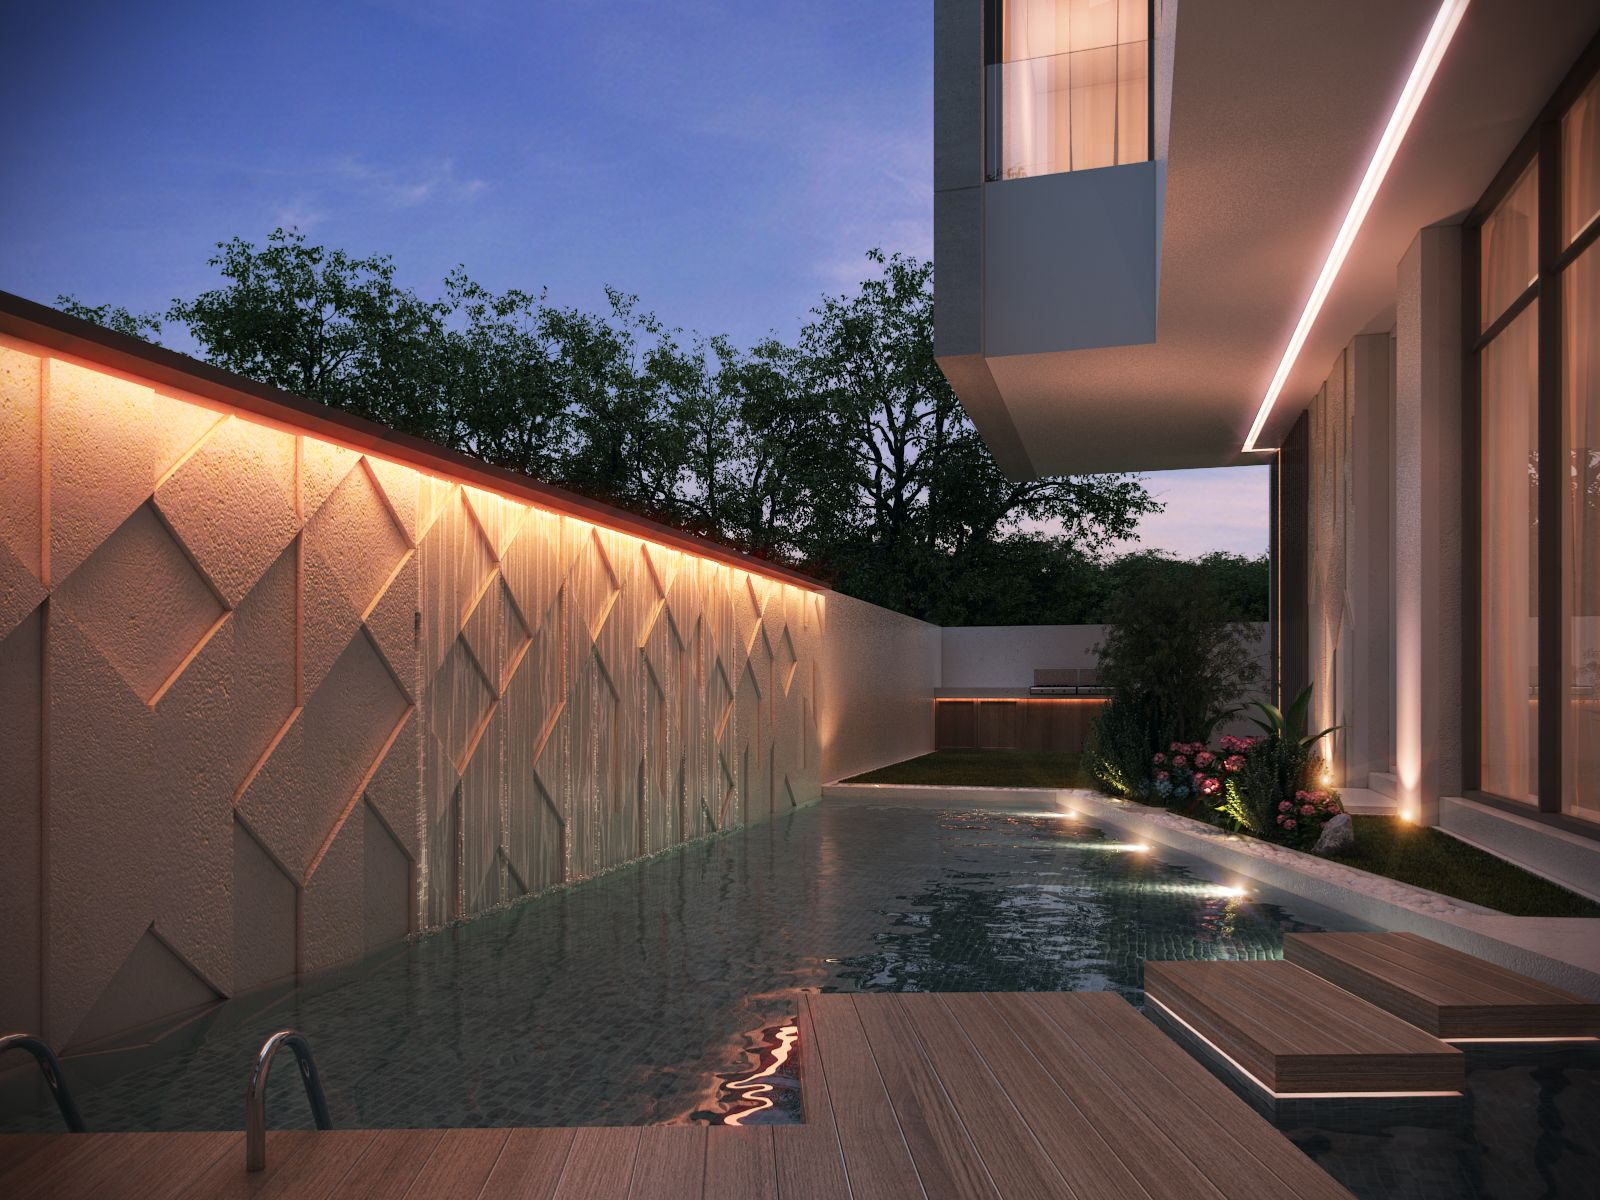 Private villa 400 m kuwait by sarah sadeq architects for Exterior wall design ideas